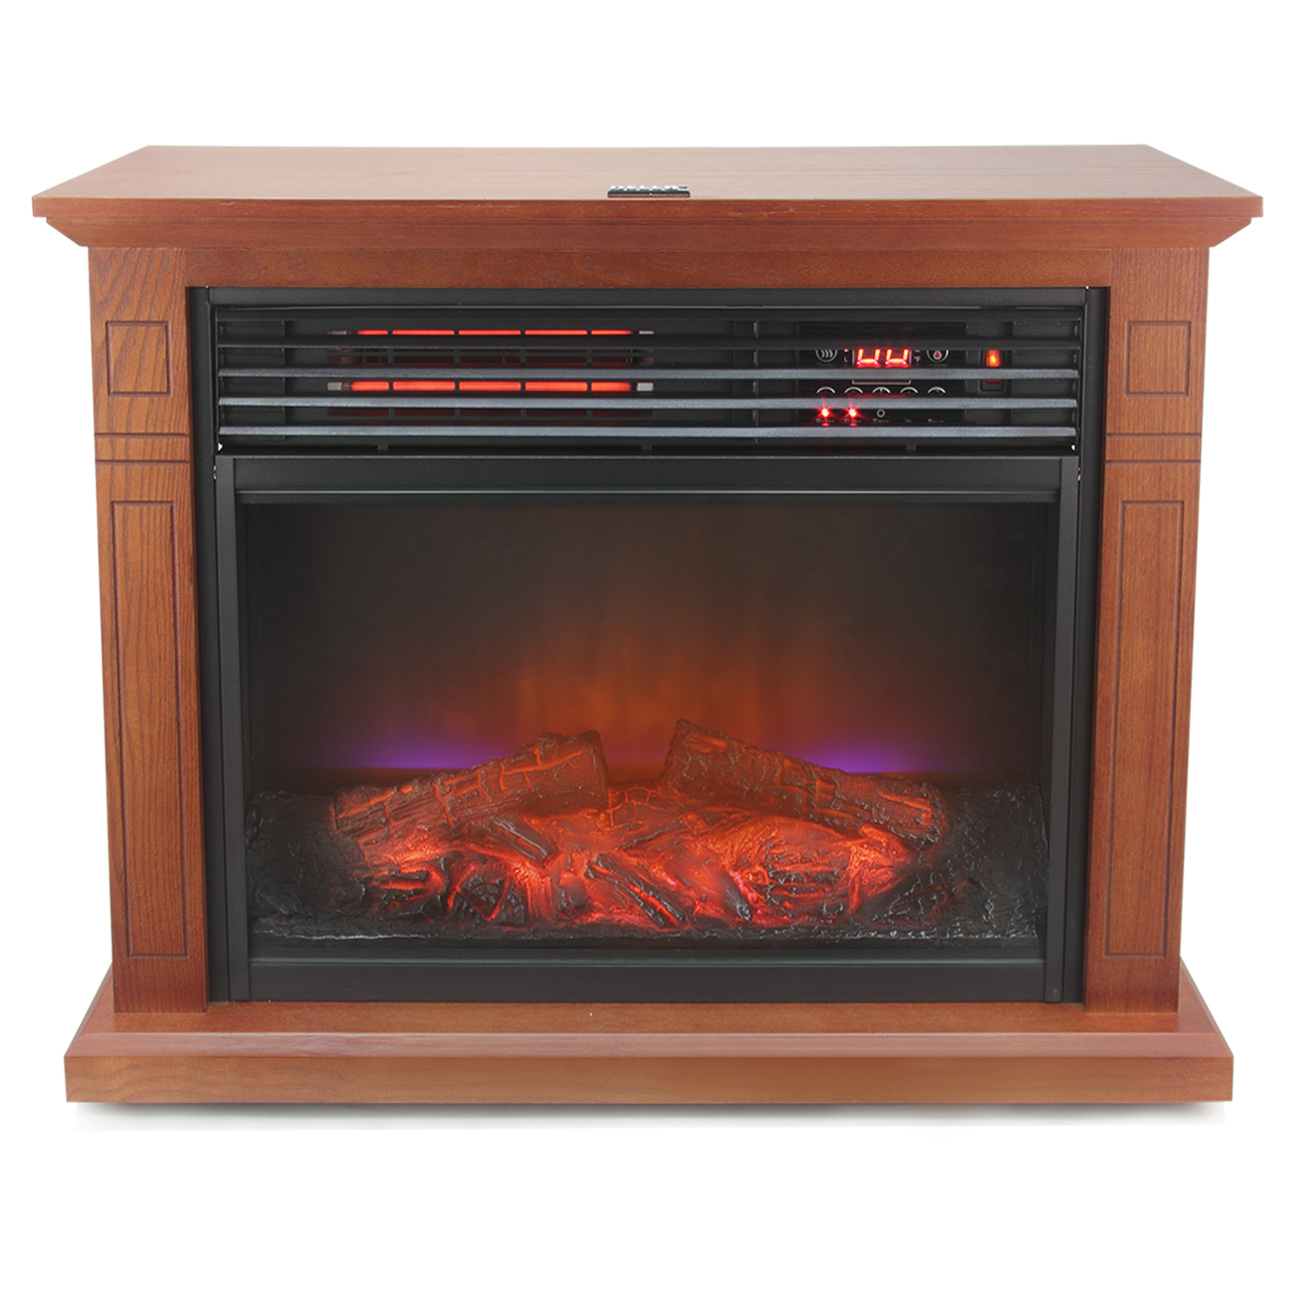 Infrared electric compact fireplace heater home warm for Electric radiant heat efficiency